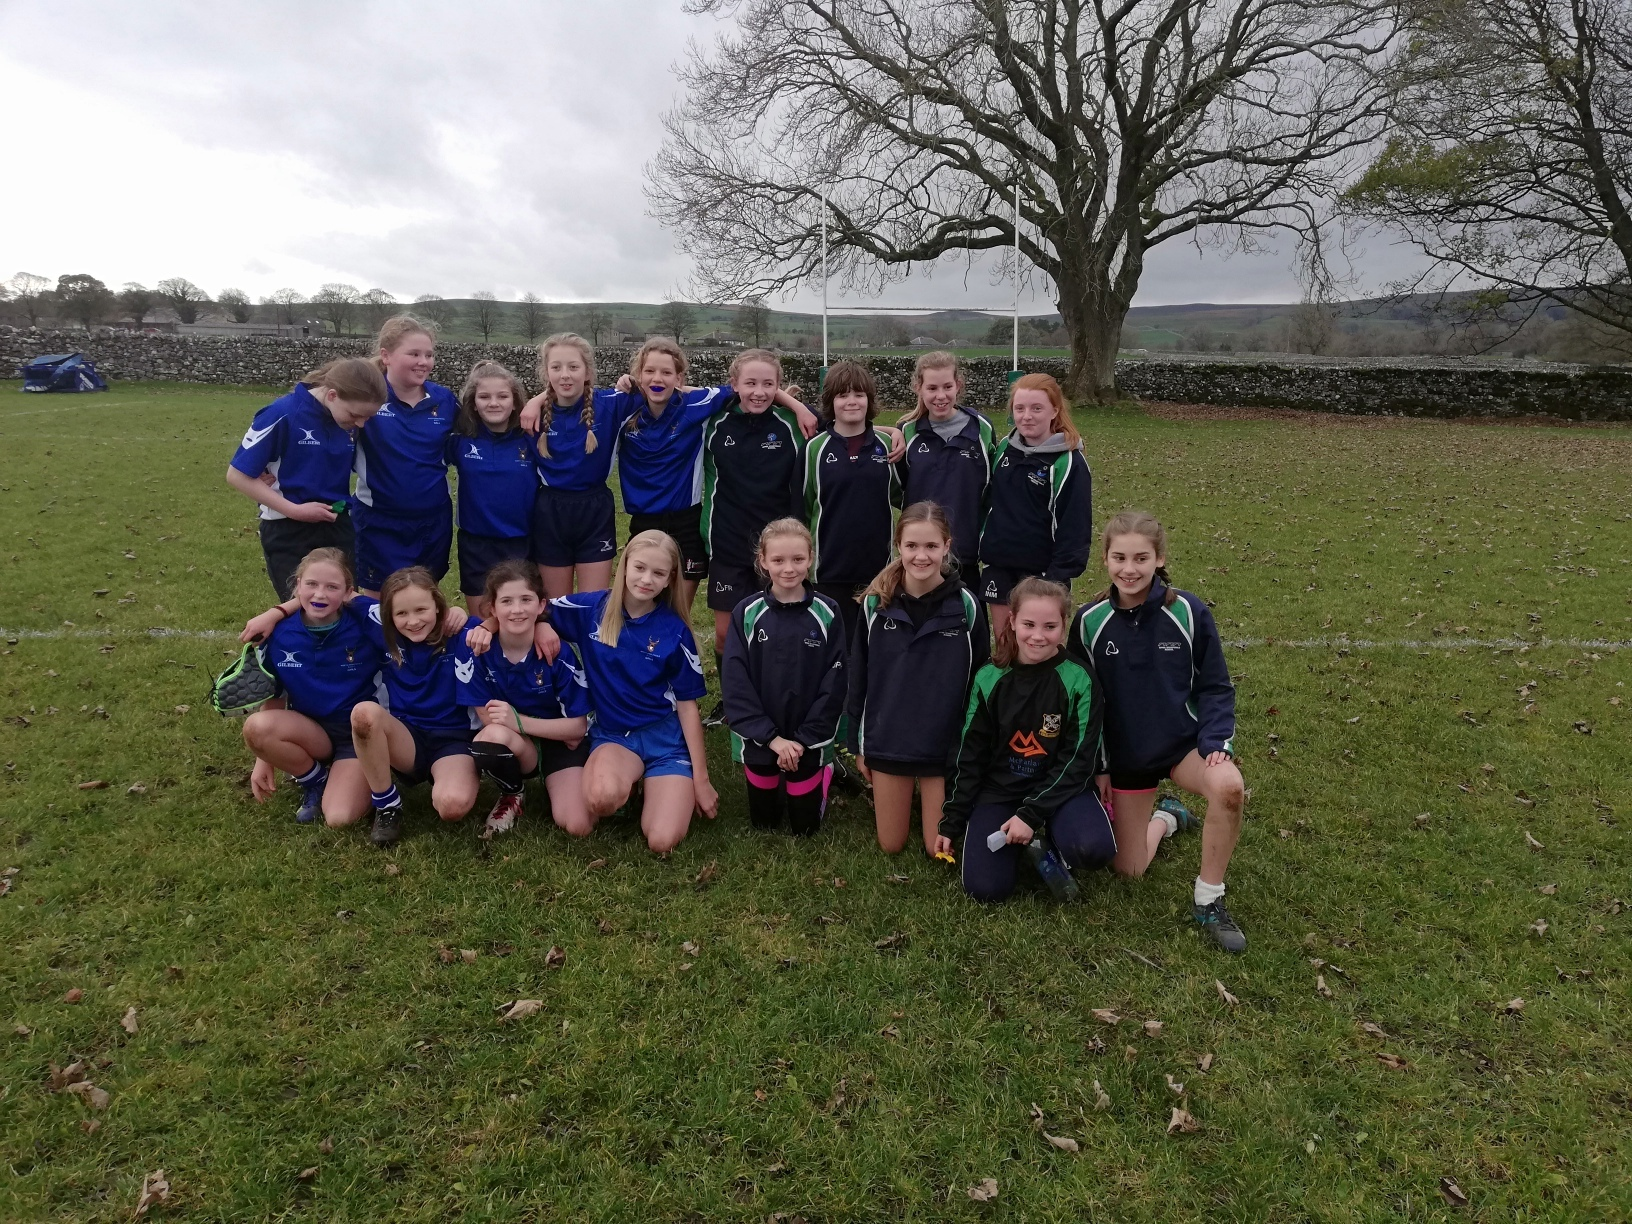 Wharfedale's under-13 team played North Ribblesdale